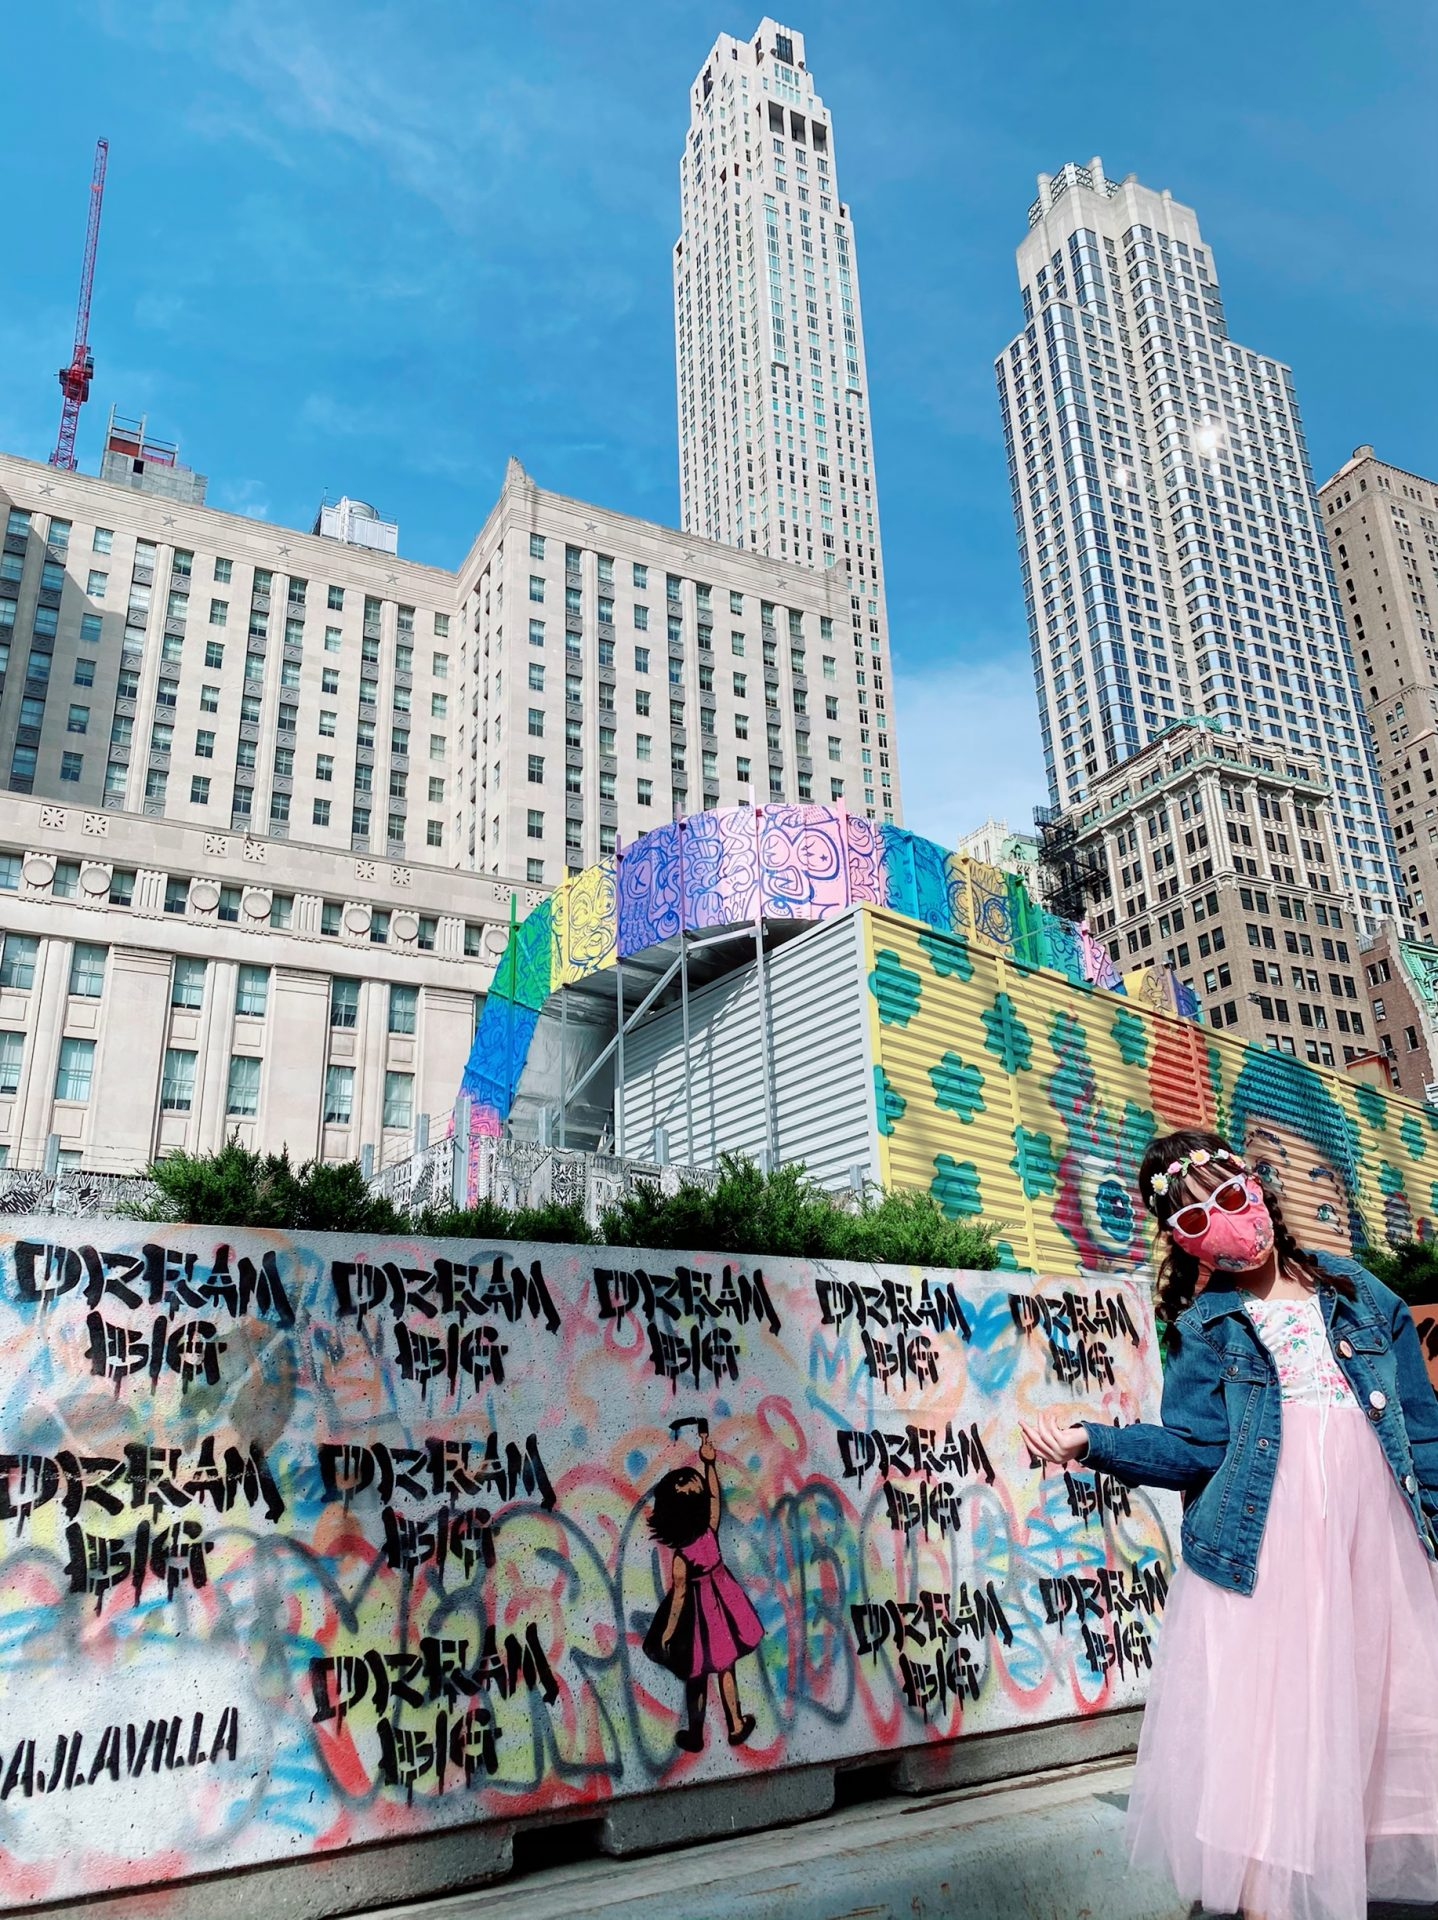 nyc street art, wtc, world trade center, nyc blogger, instagramable nyc, nyc mural art, fidi nyc